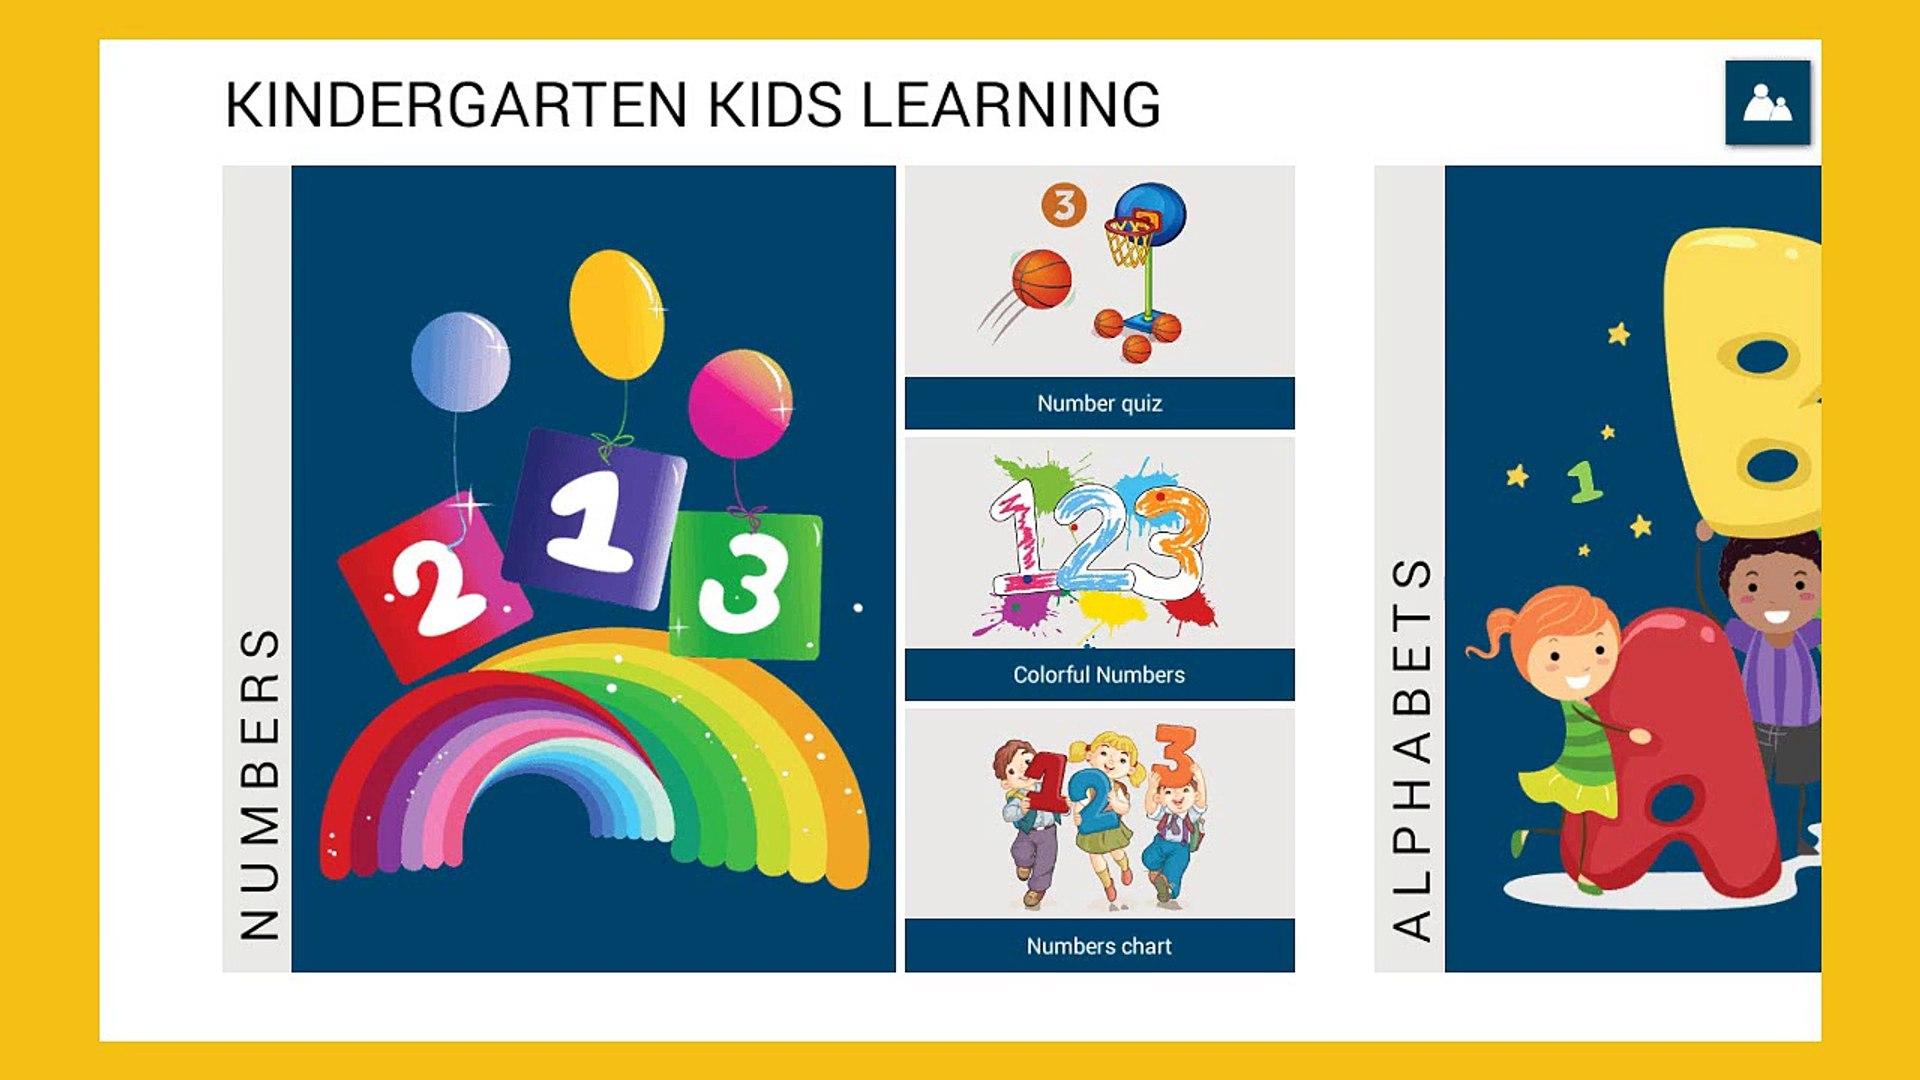 Kindergarten Kids learning - Kids learn Alphabet and Numbers - Education app for Kids